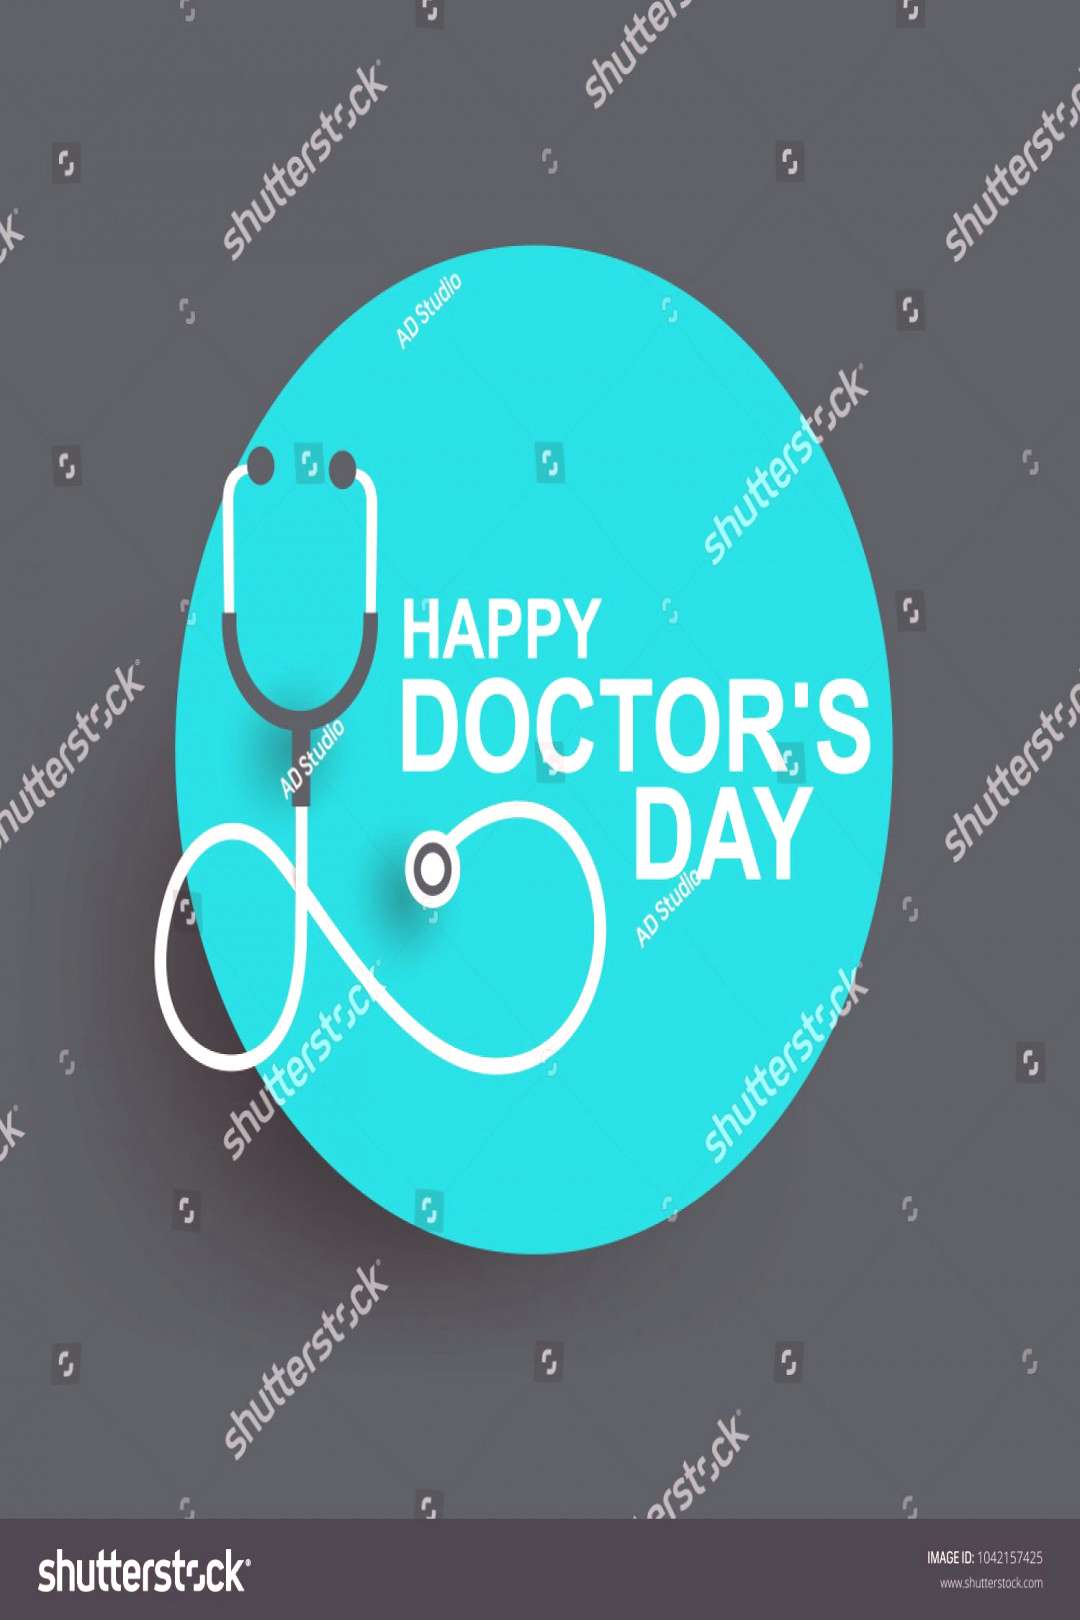 Doctors day greeting card design with stethoscope ,